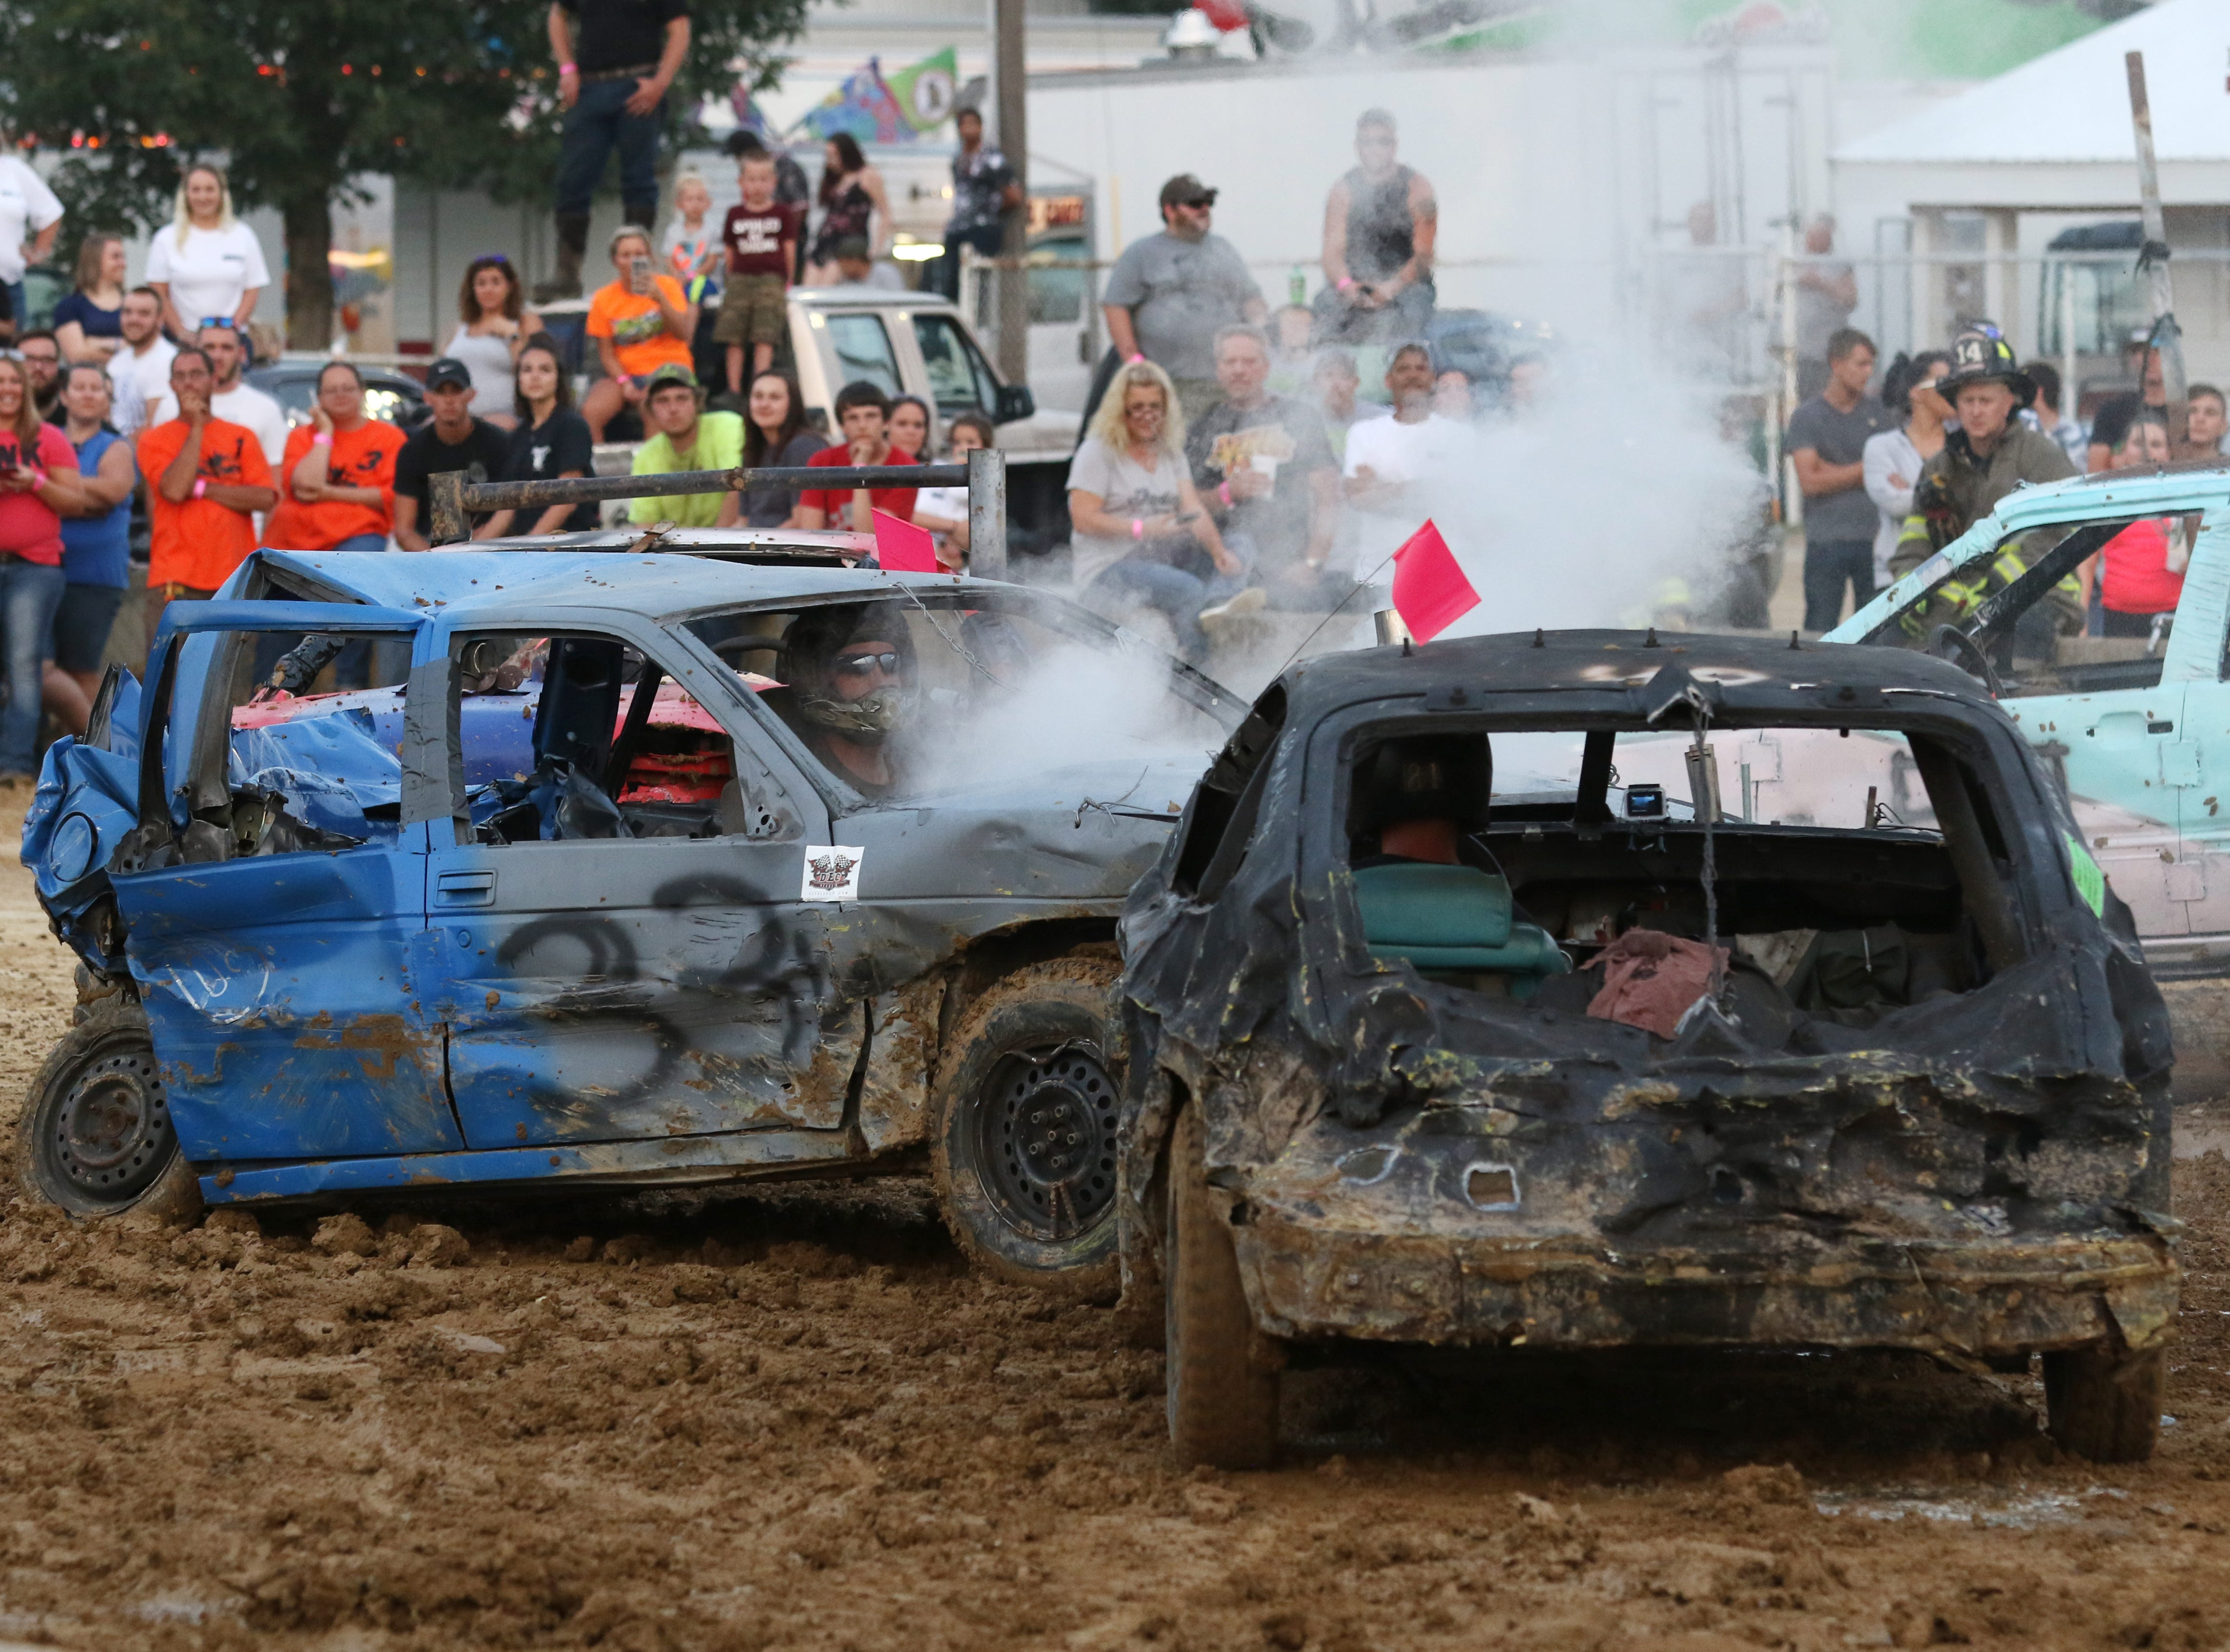 Dusty Dady finishes off the first heat of the Sarge and Sons Demolition Derby at the Muskingum County Fair on Tuesday by taking out Scott Cordle.